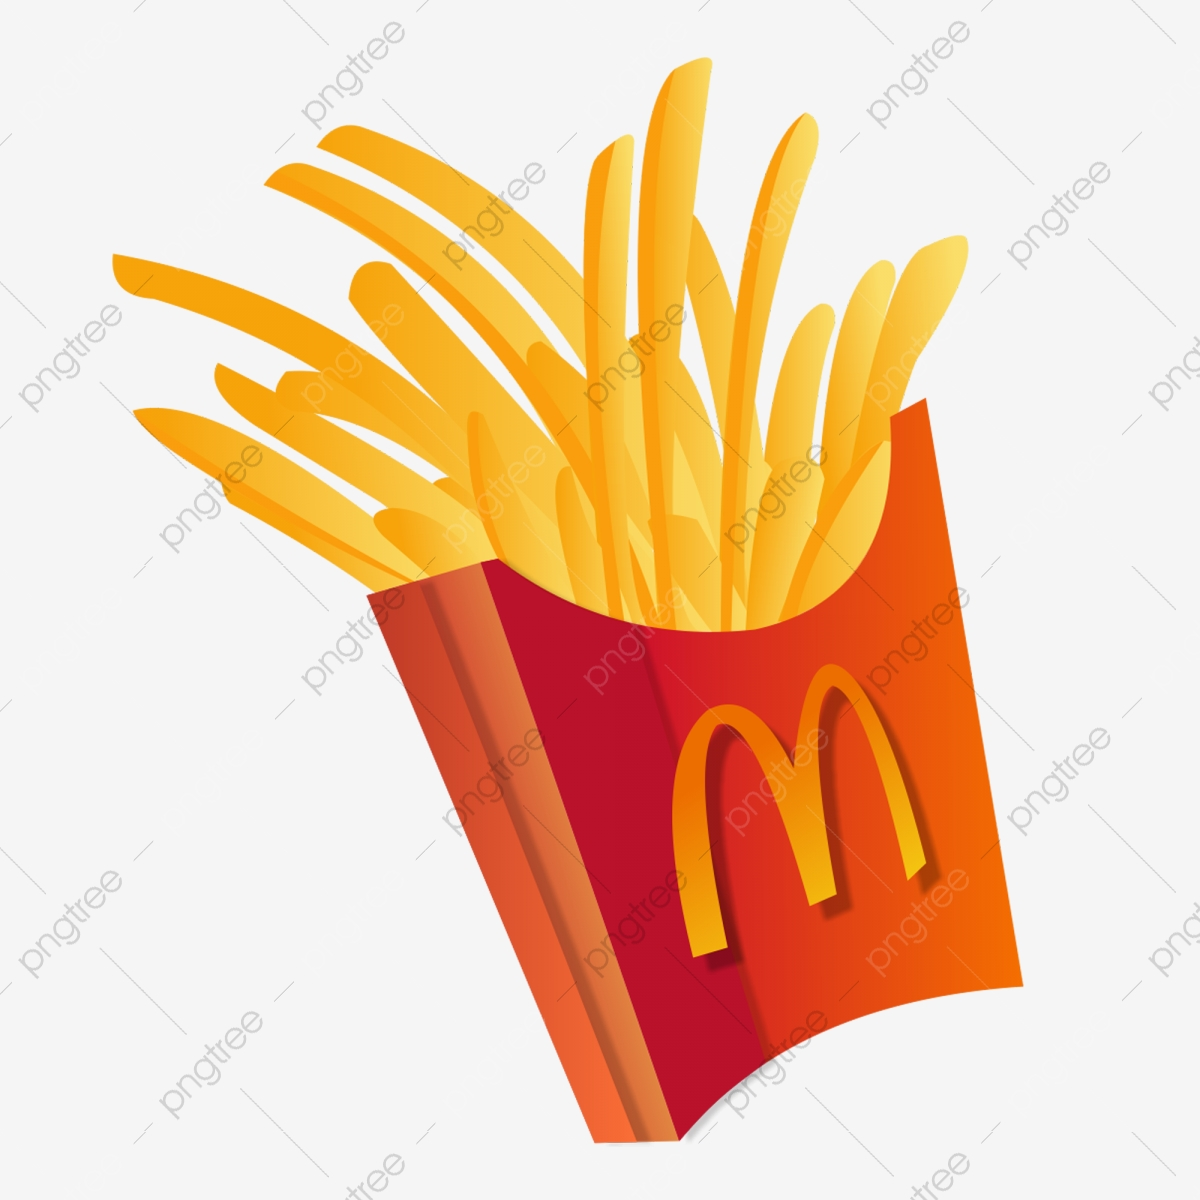 Cartoon Mcdonald S Fries Free Button Delicious French Fries